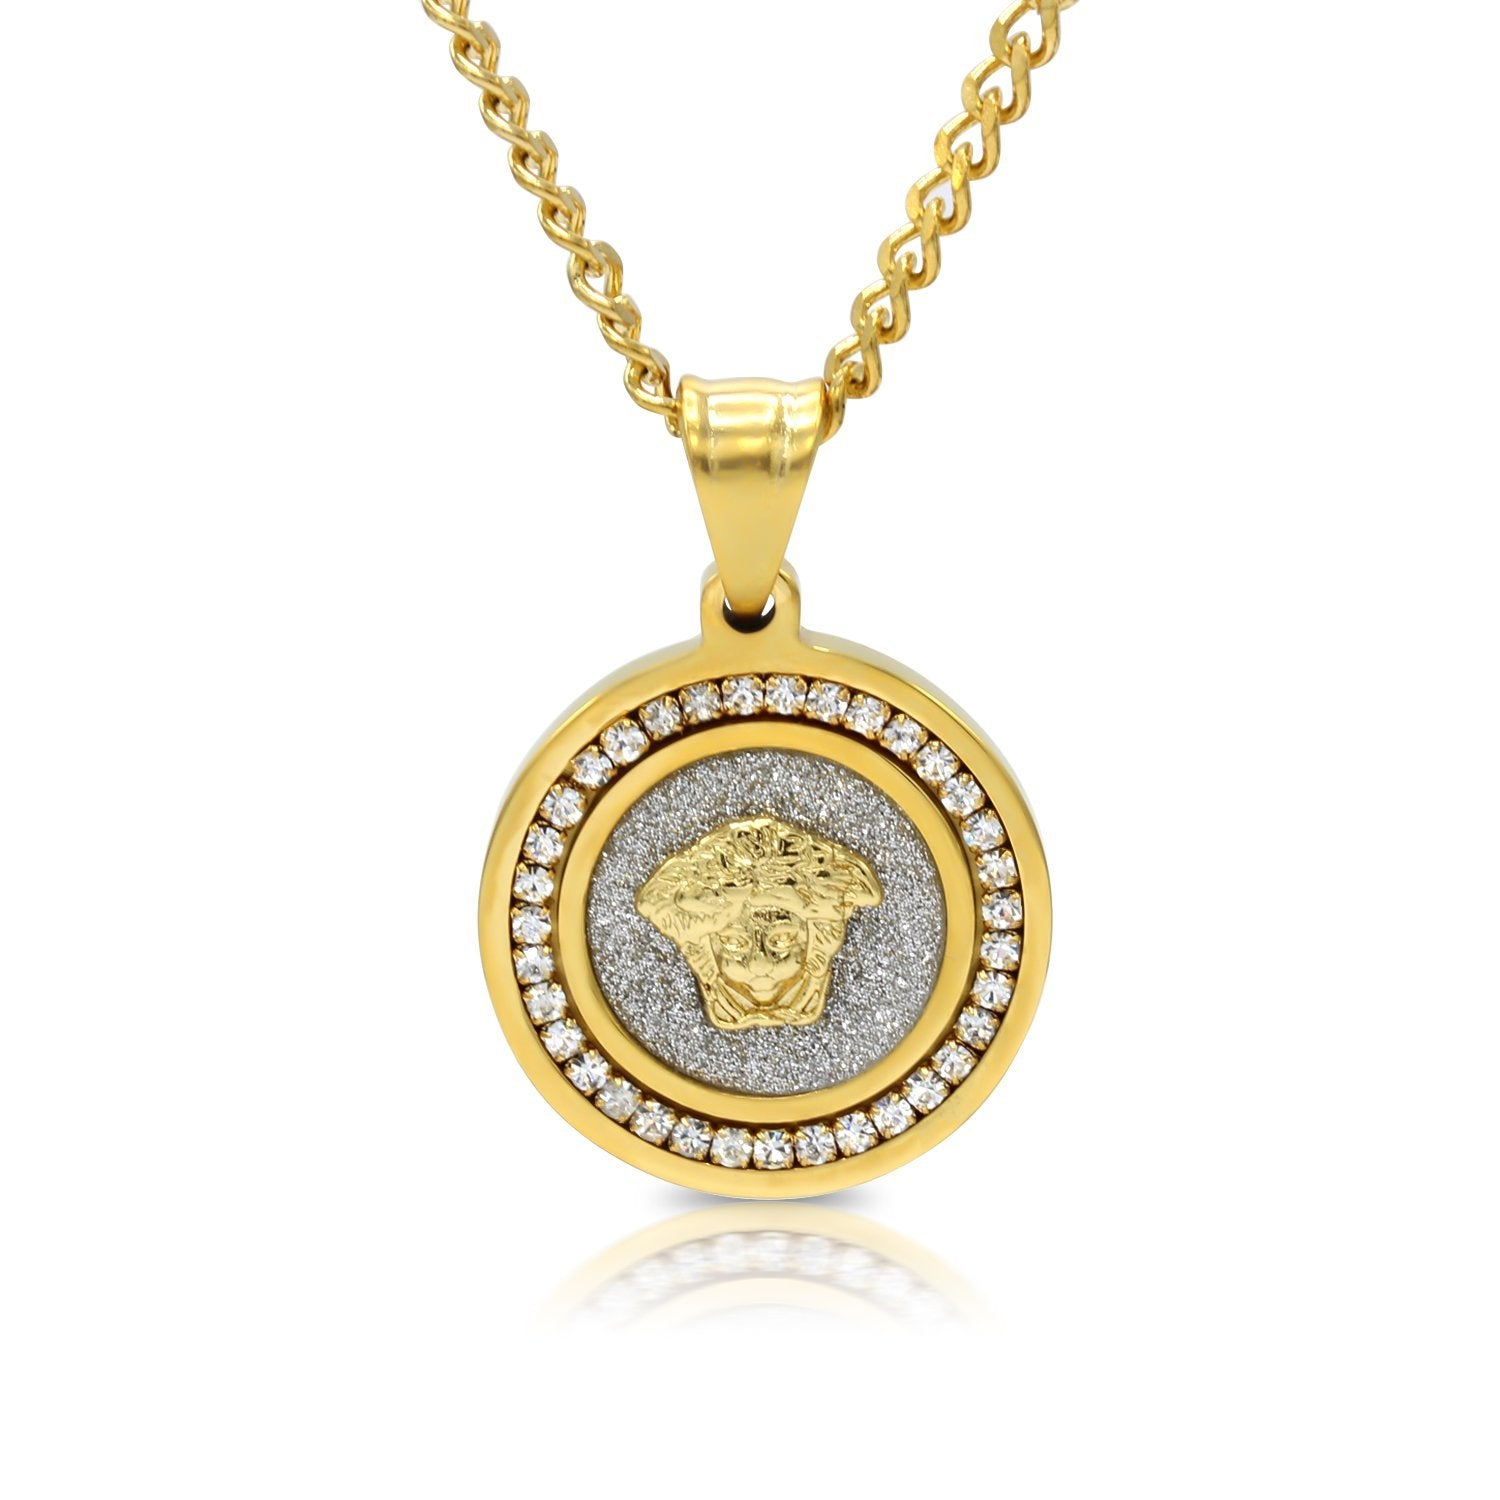 Iced Out Medusa Circle Charm Necklace Stainless Steel Bling CZ